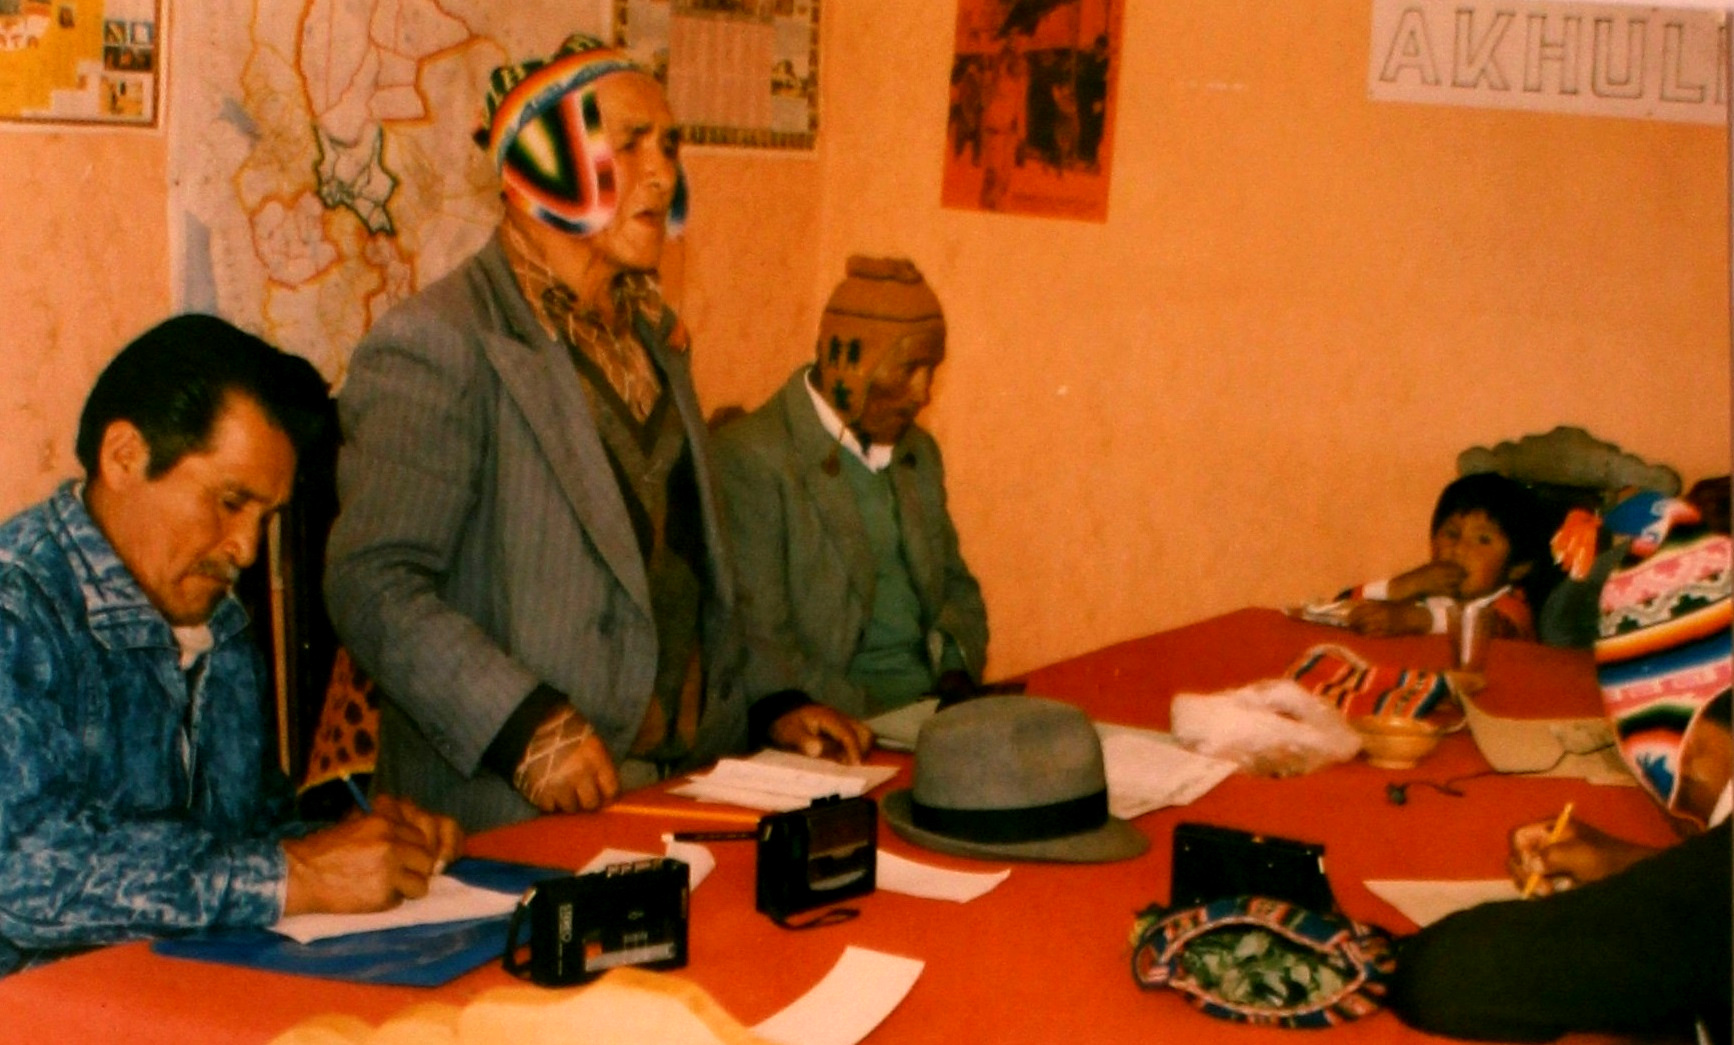 Indigenous leader Andrés Jach'aqullu (standing) shares oral histories on the caciques apoderados movement with the THOA in La Paz in 1990. Courtesy of the Andean Oral History Workshop.